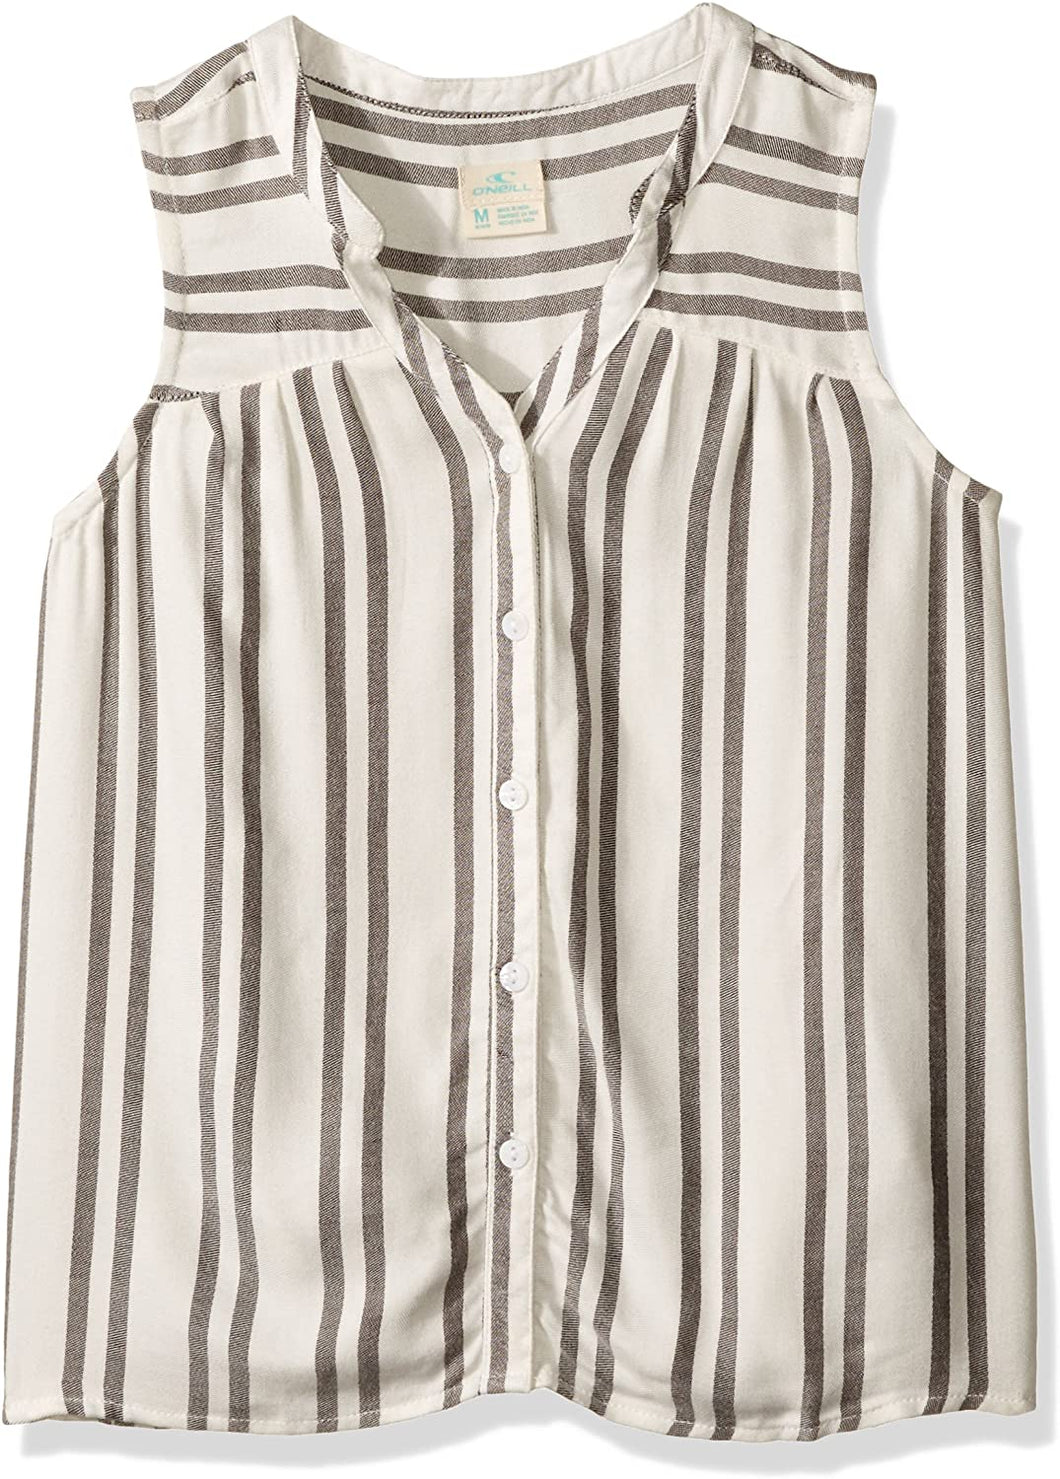 O'NEILL Girls' Big Corrine Woven Top, White, Girls Size Large